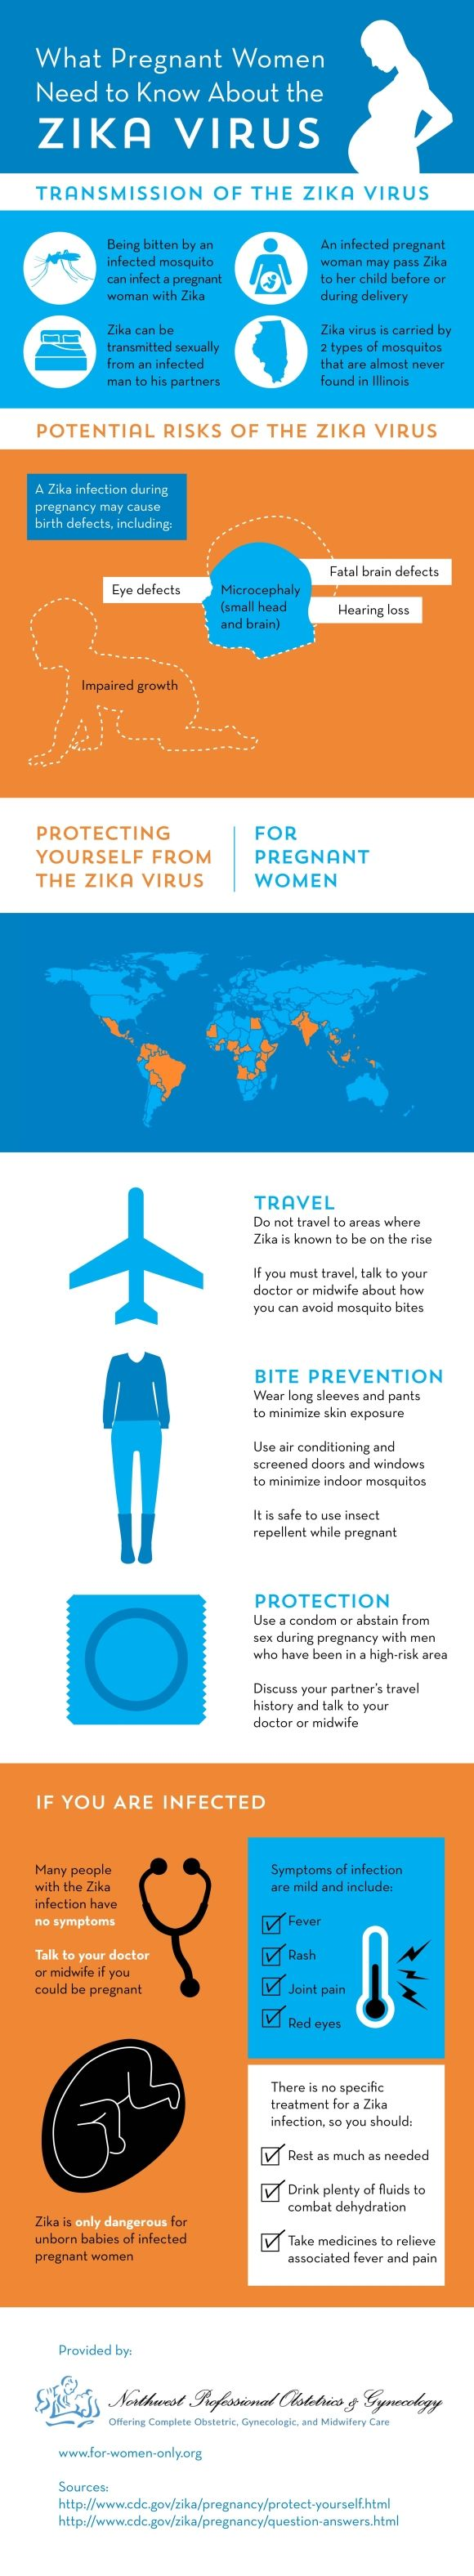 A baby who contracts the Zika virus from a pregnant mother might experience microcephaly, hearing loss, and fatal brain defects. View this infographic and learn how to keep yourself protected! #infographic #data visualization #pregnancy #gynecology #iud #birth control